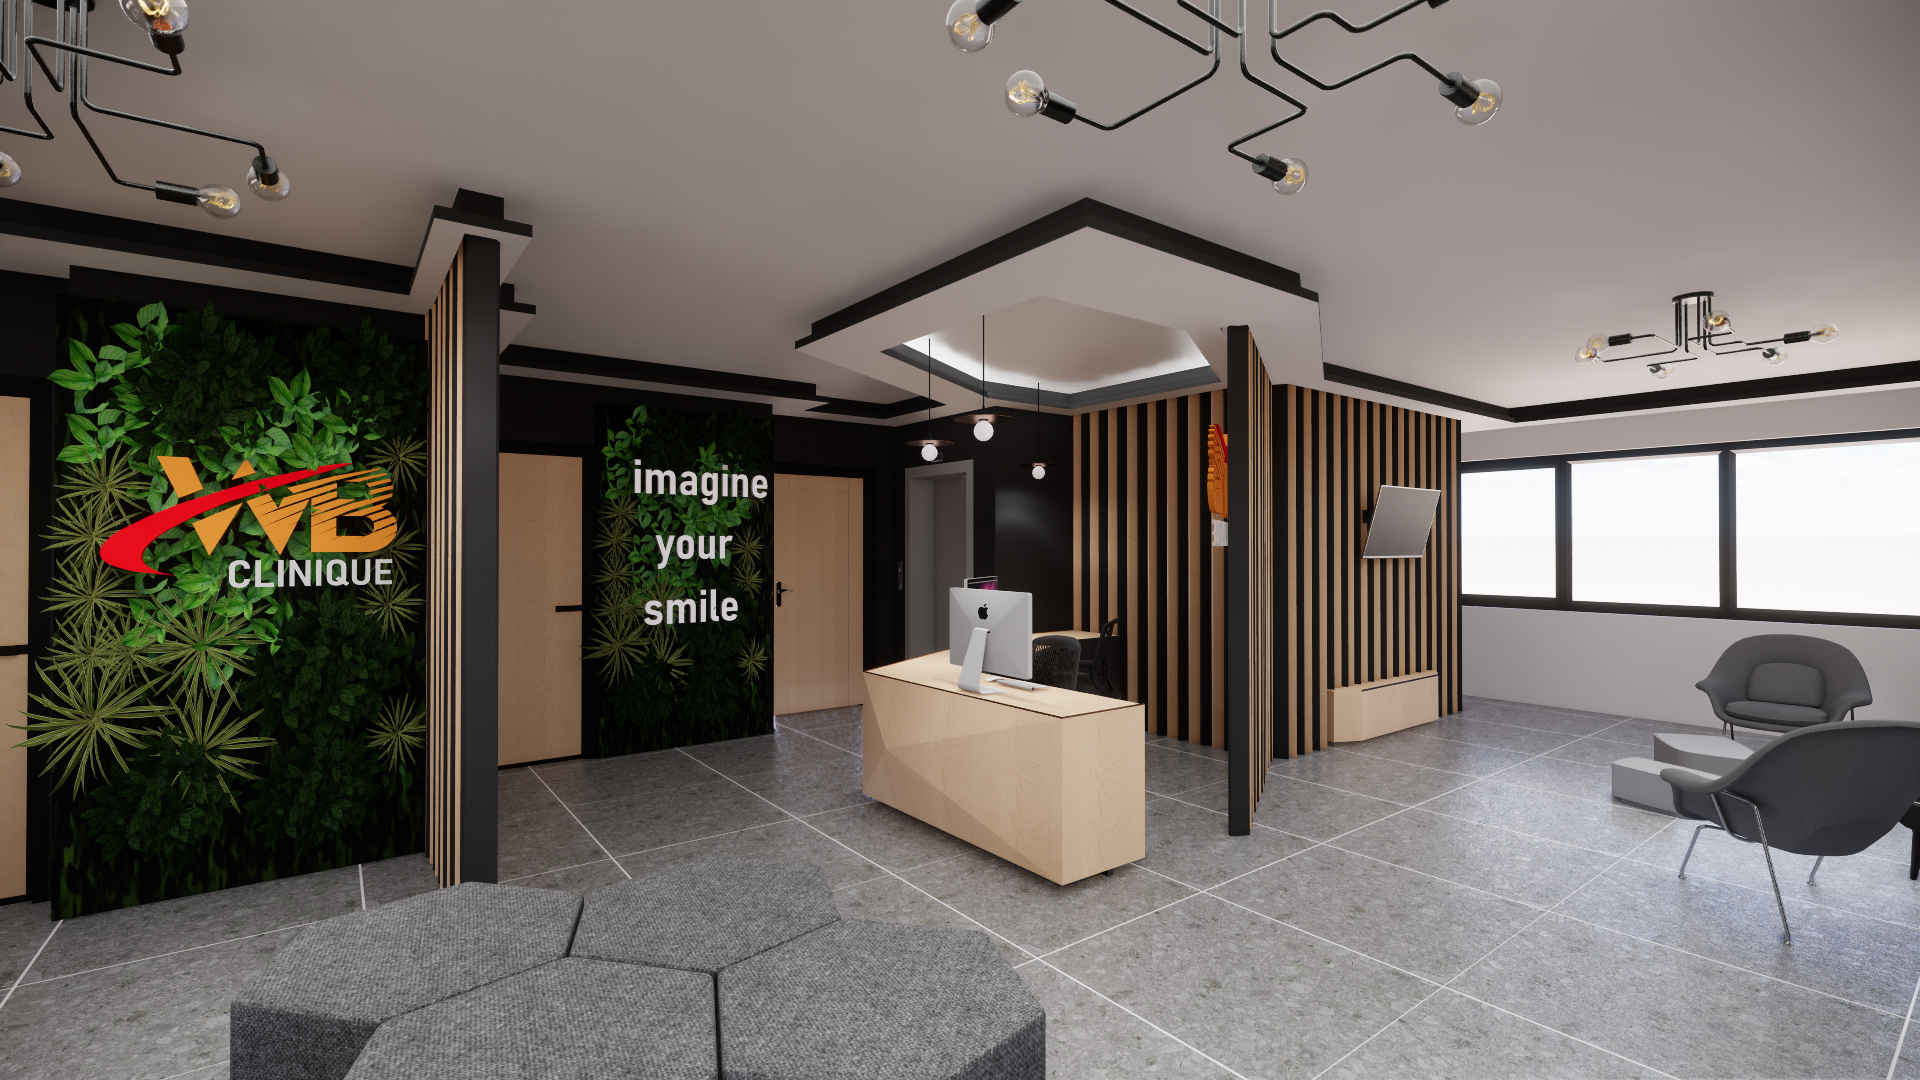 wdclinic_render_01.png